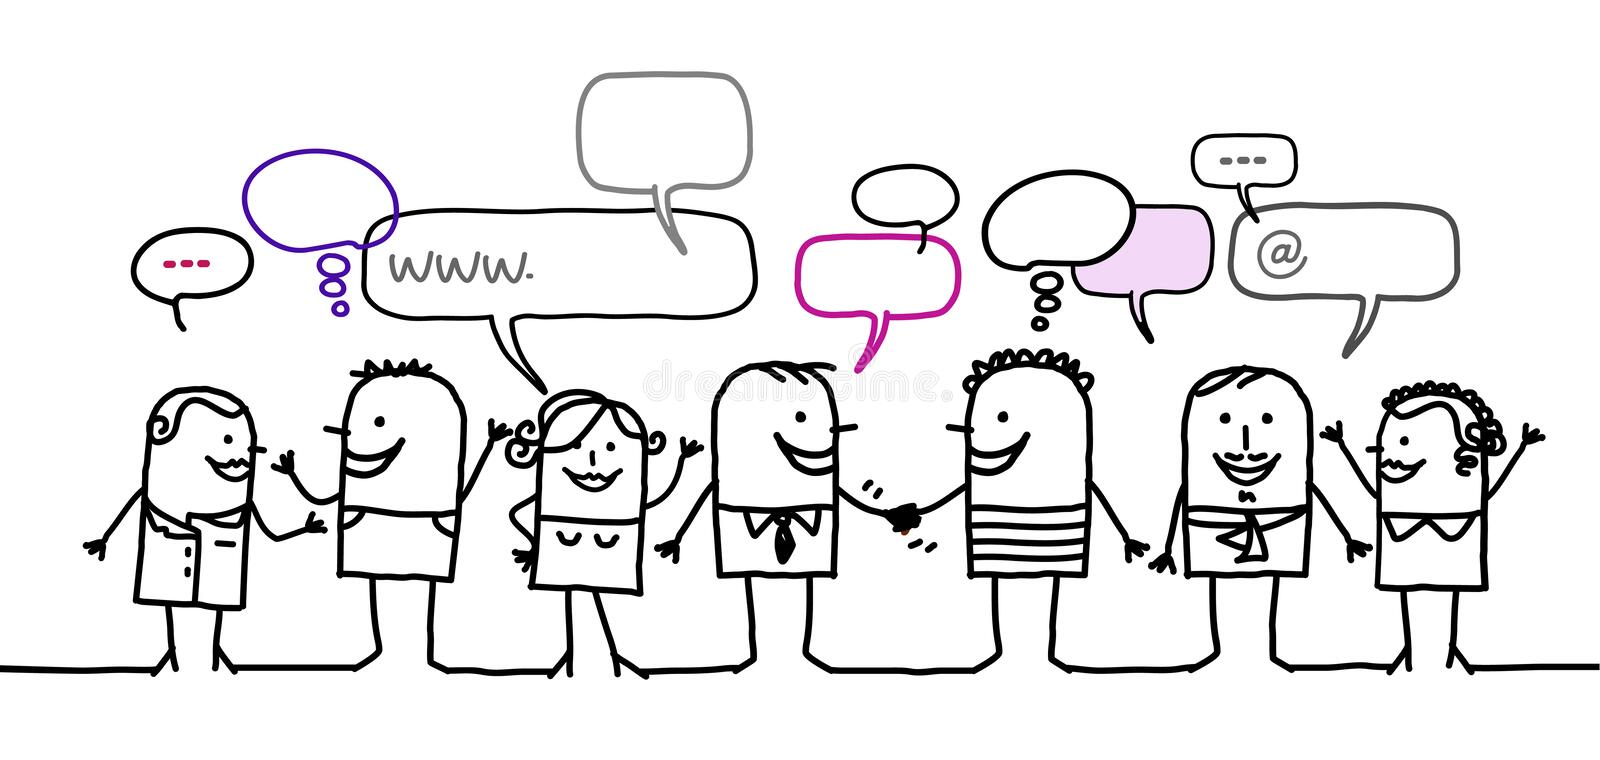 People & social network. Hand drawn cartoon characters - people & social network stock illustration